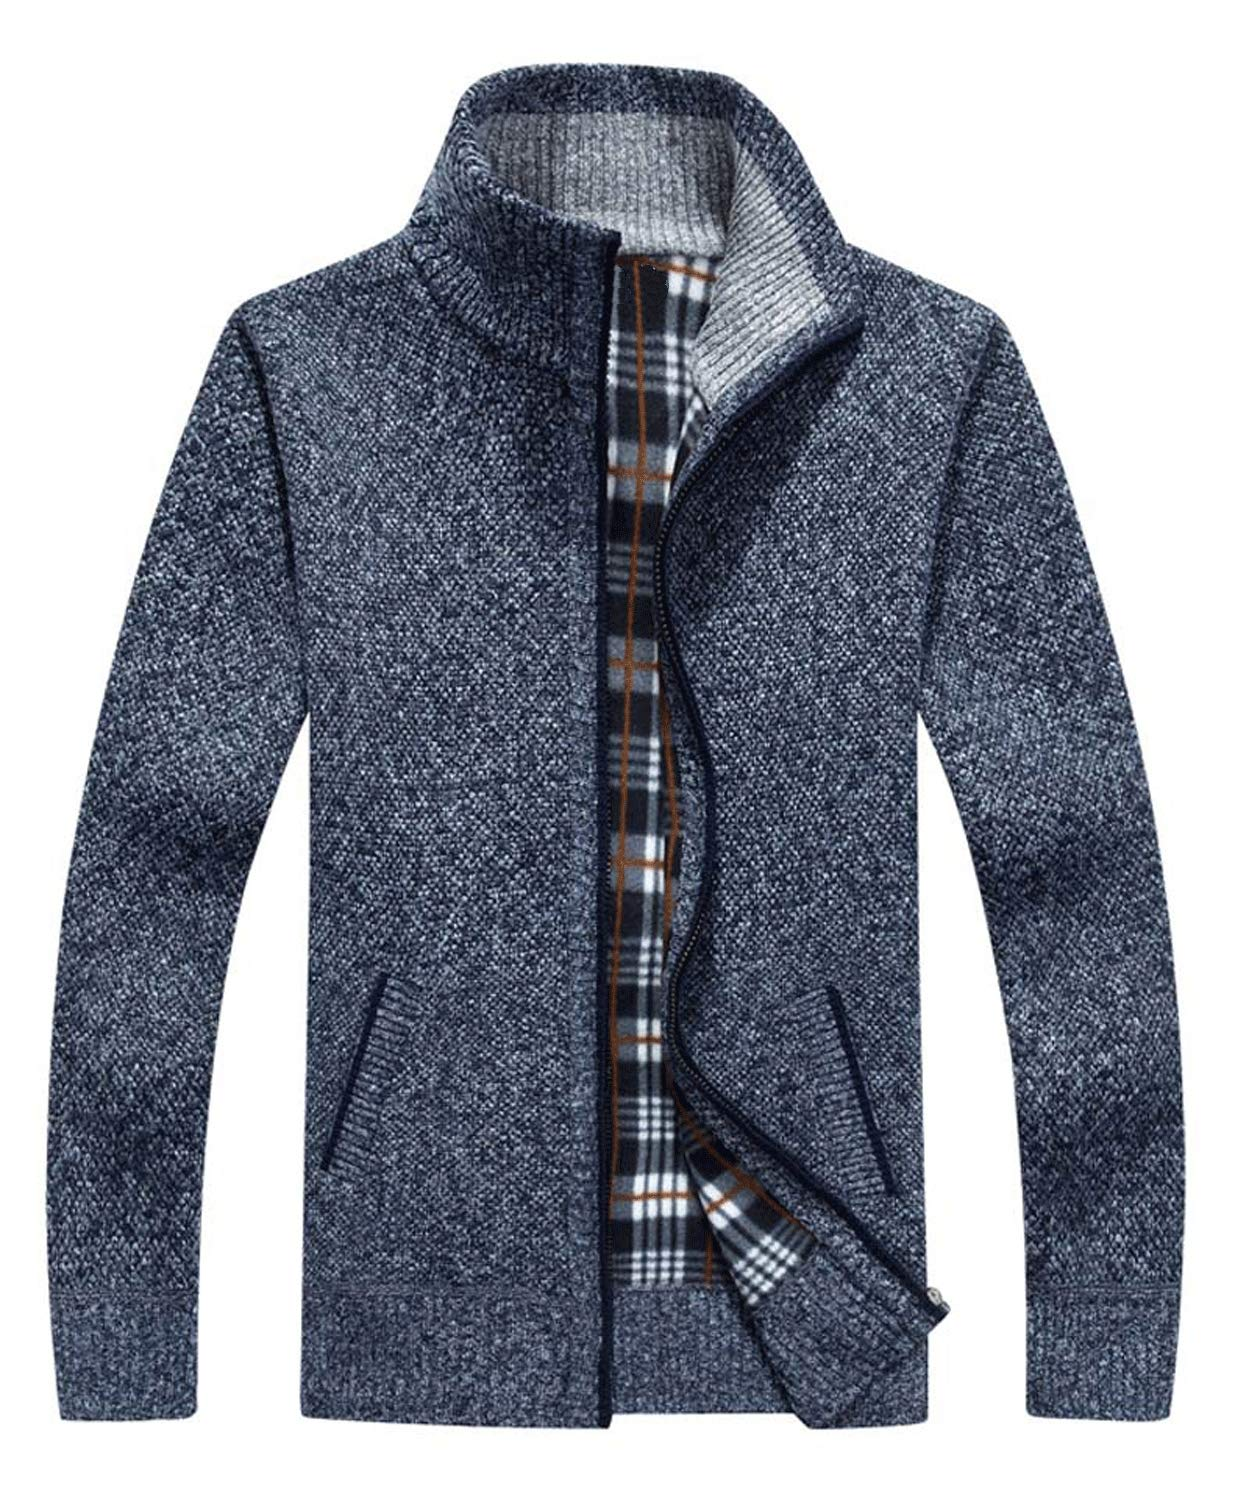 Vcansion Men's Classic Long Sleeve Full Zip Plus Soft Warm Knitted Cardigan Sweaters Coats Blue Grey XXL by Vcansion